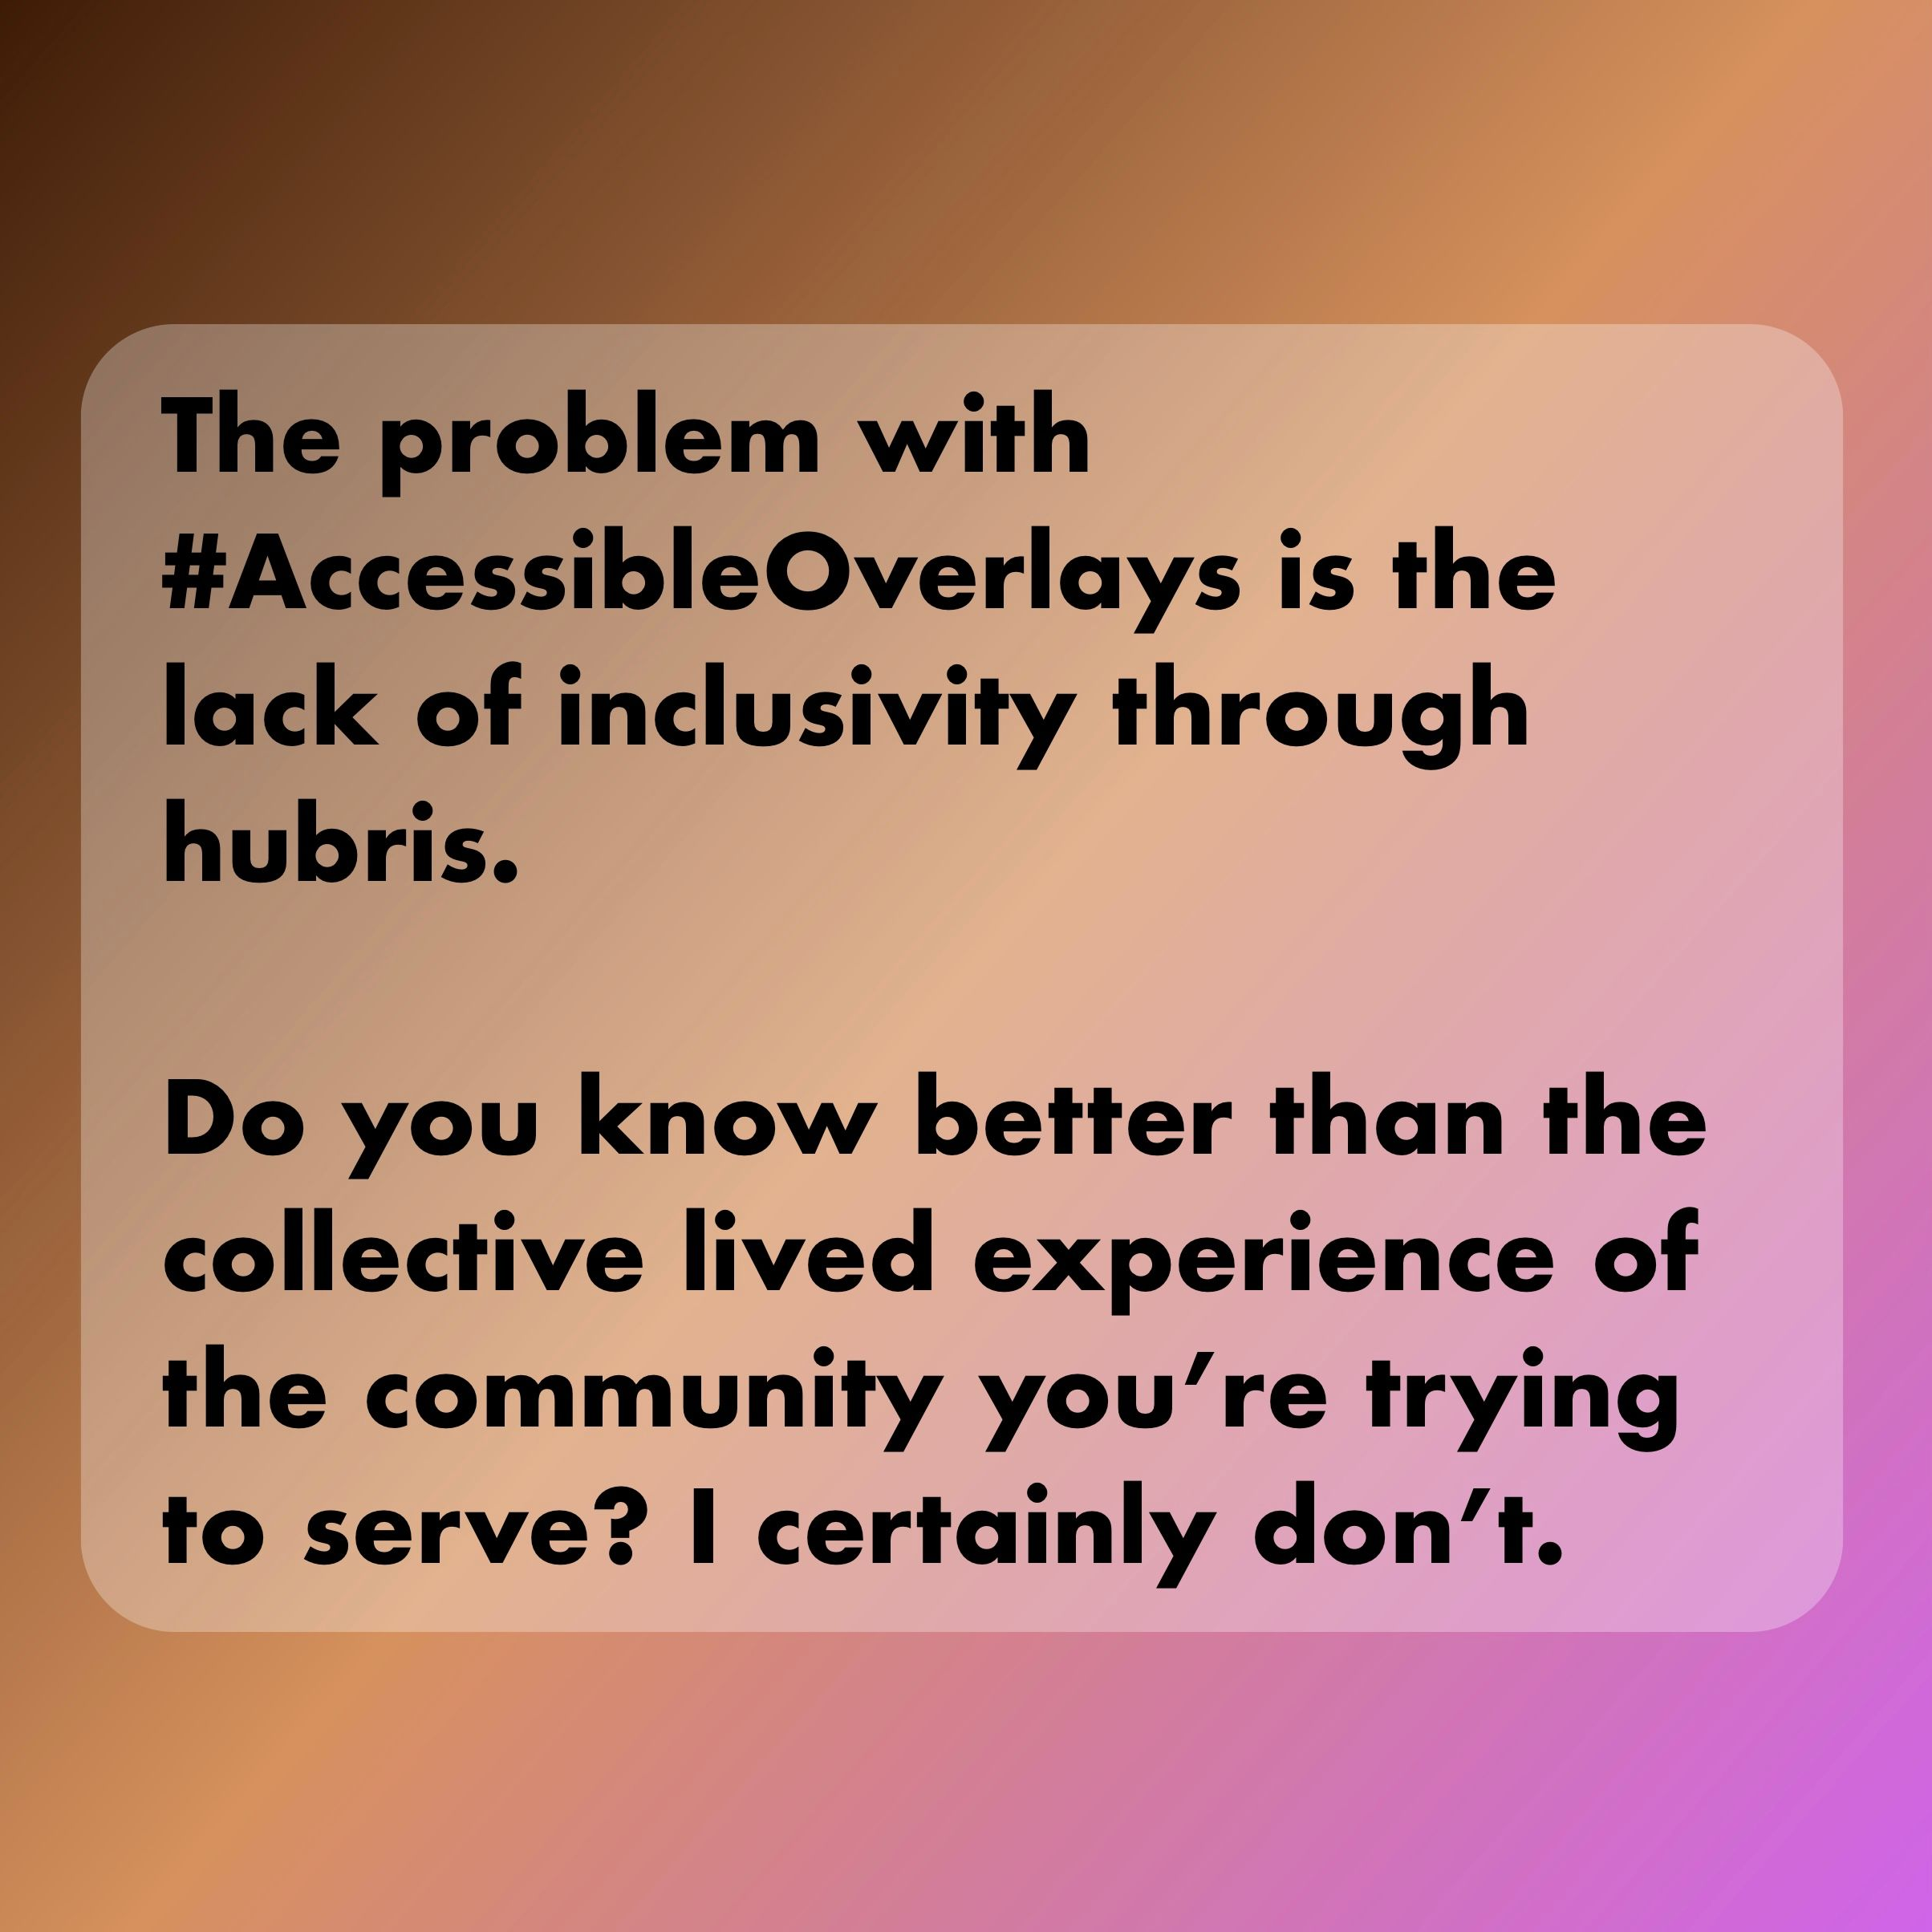 The problem with AccessibleOverlays is the lack of inclusivity through hubris. Do you know better than the collective lived experience of the community you're trying to serve? I certainly don't.